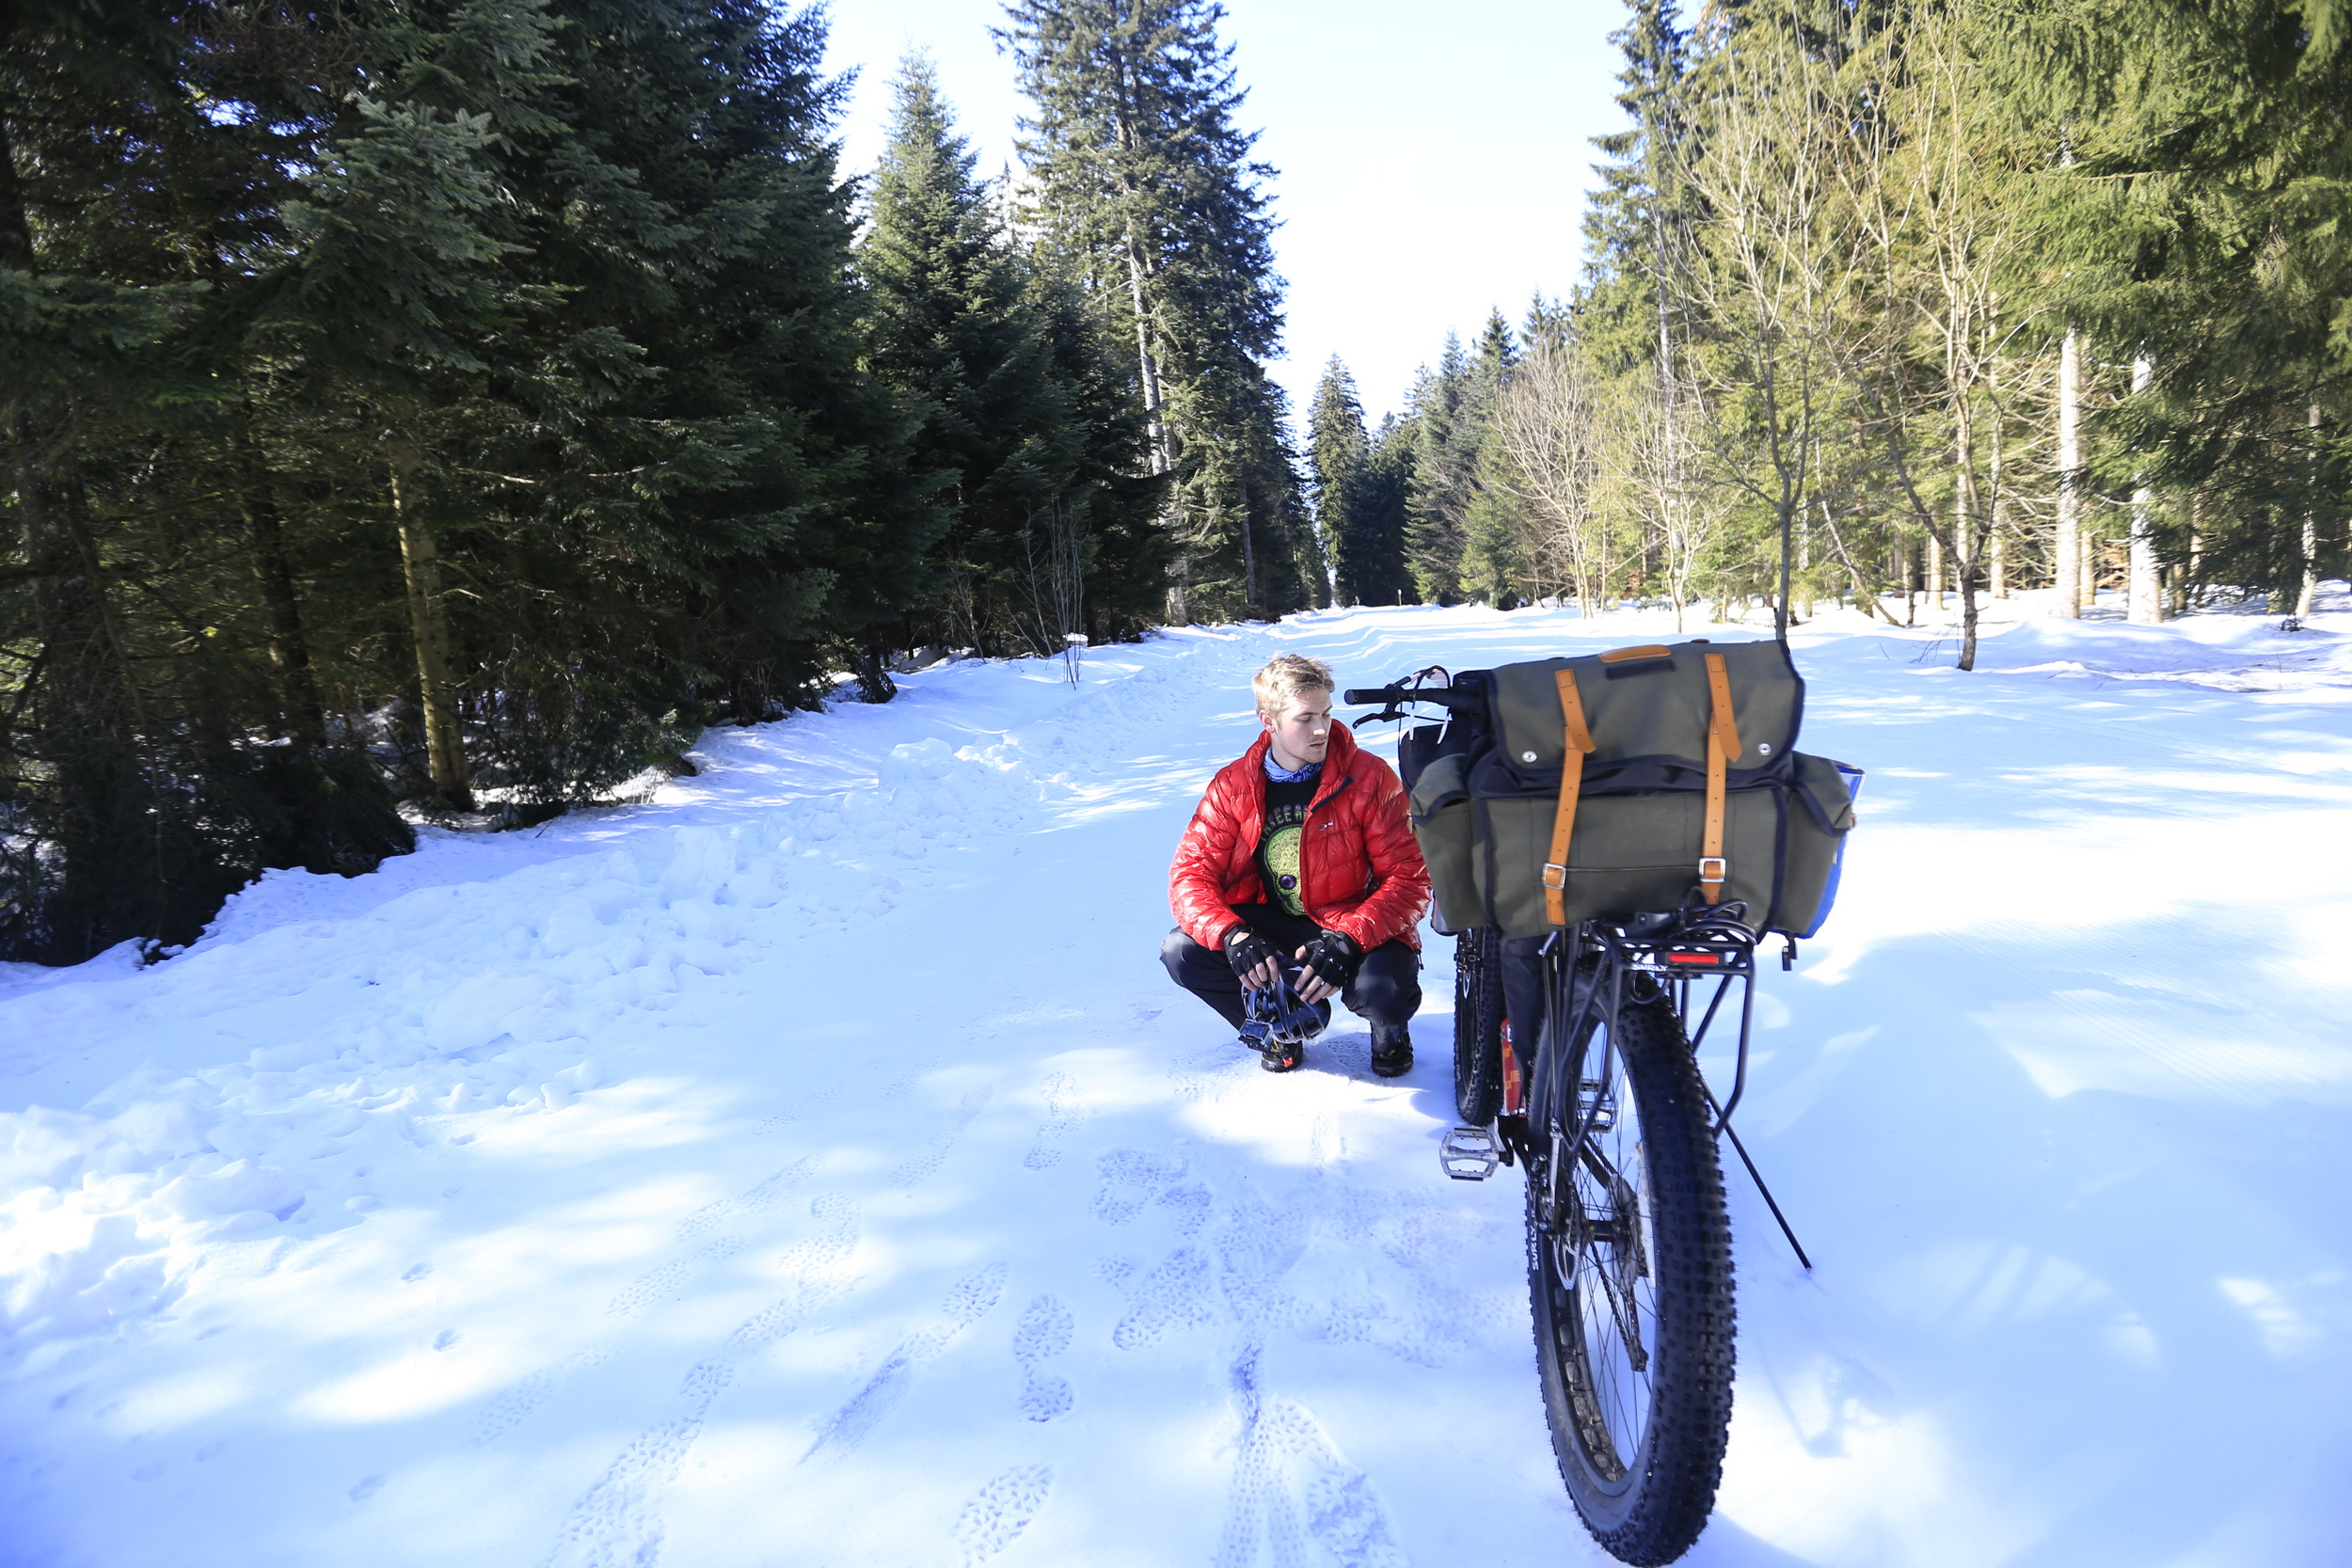 surly, surly ecr, jack mac, explorer, black forest, germany, travel photography, adventure, cycling, cycle touring, bicycle touring, photography, canon, canon 6d, photo